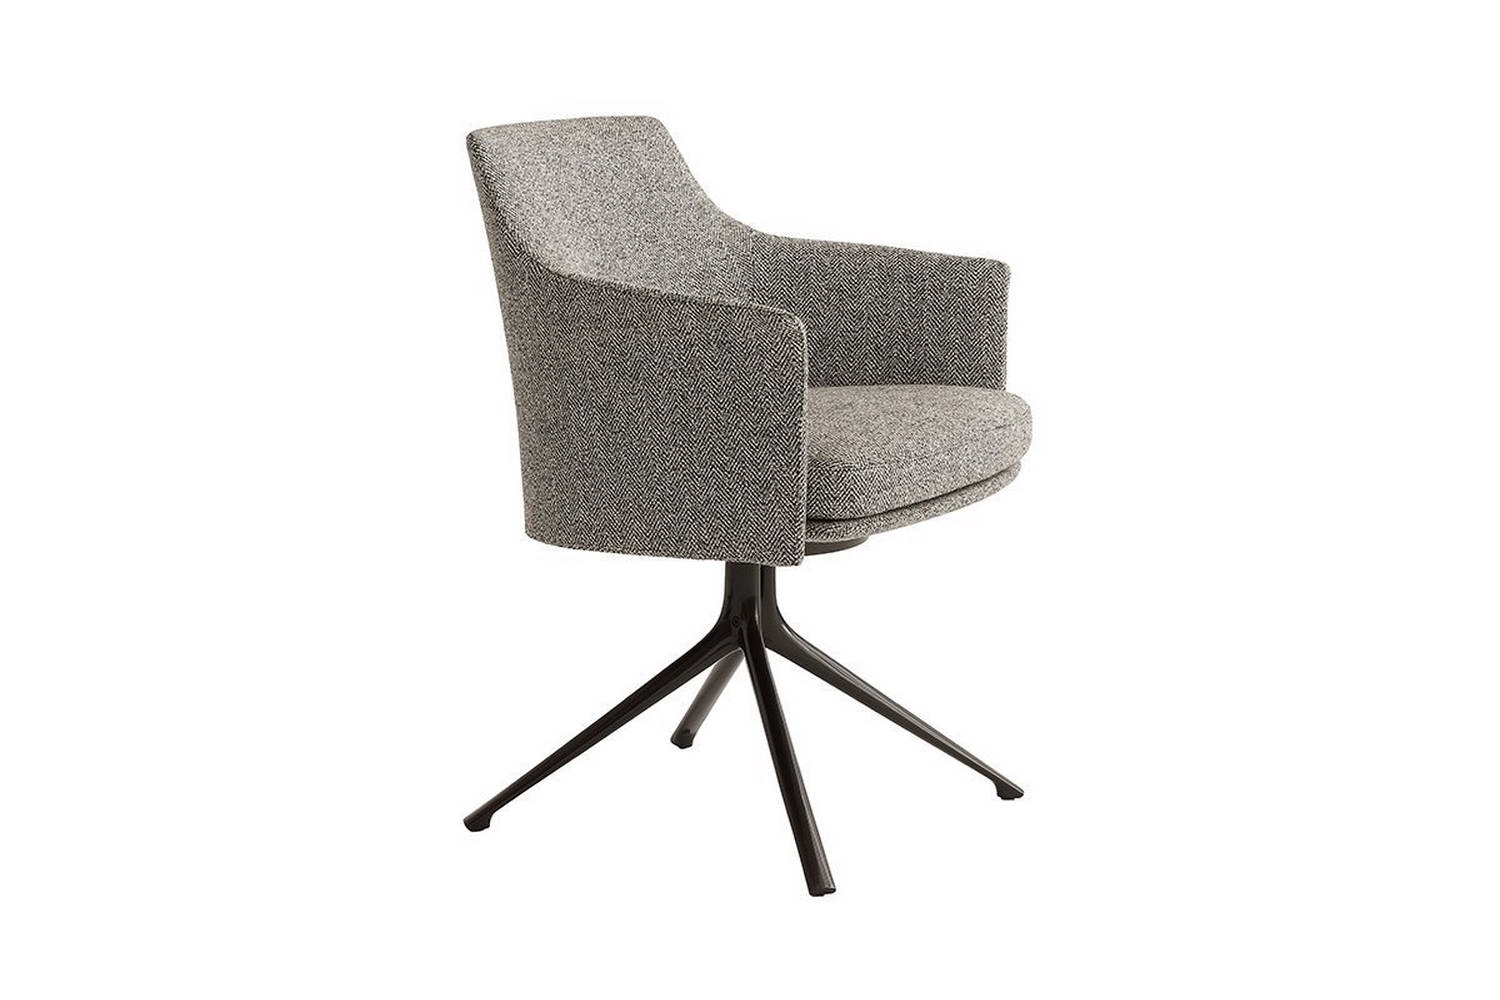 Stanford Bridge Chair by Jean-Marie Massaud for Poliform